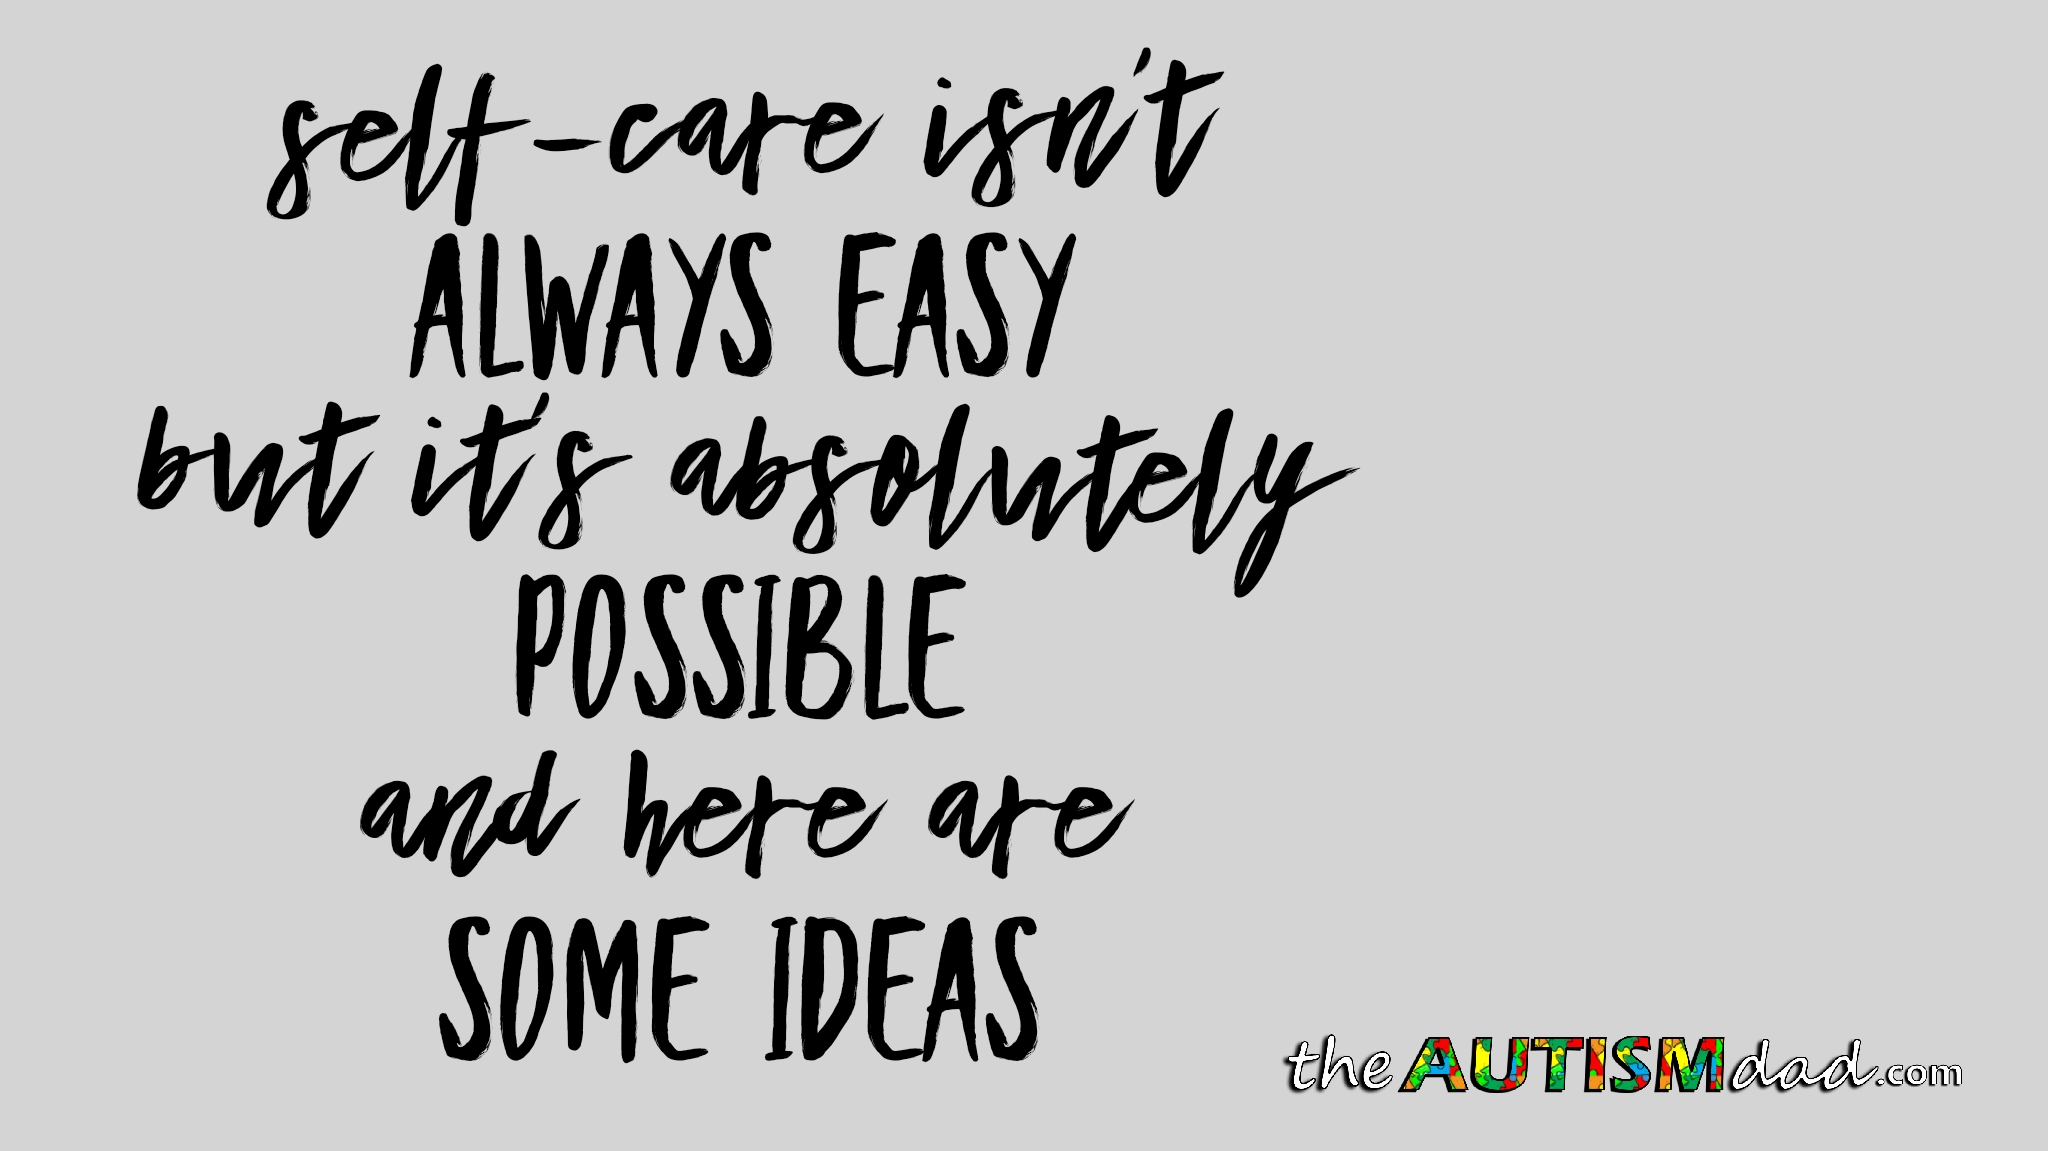 Self-care isn't always easy but it's absolutely possible and here are some ideas